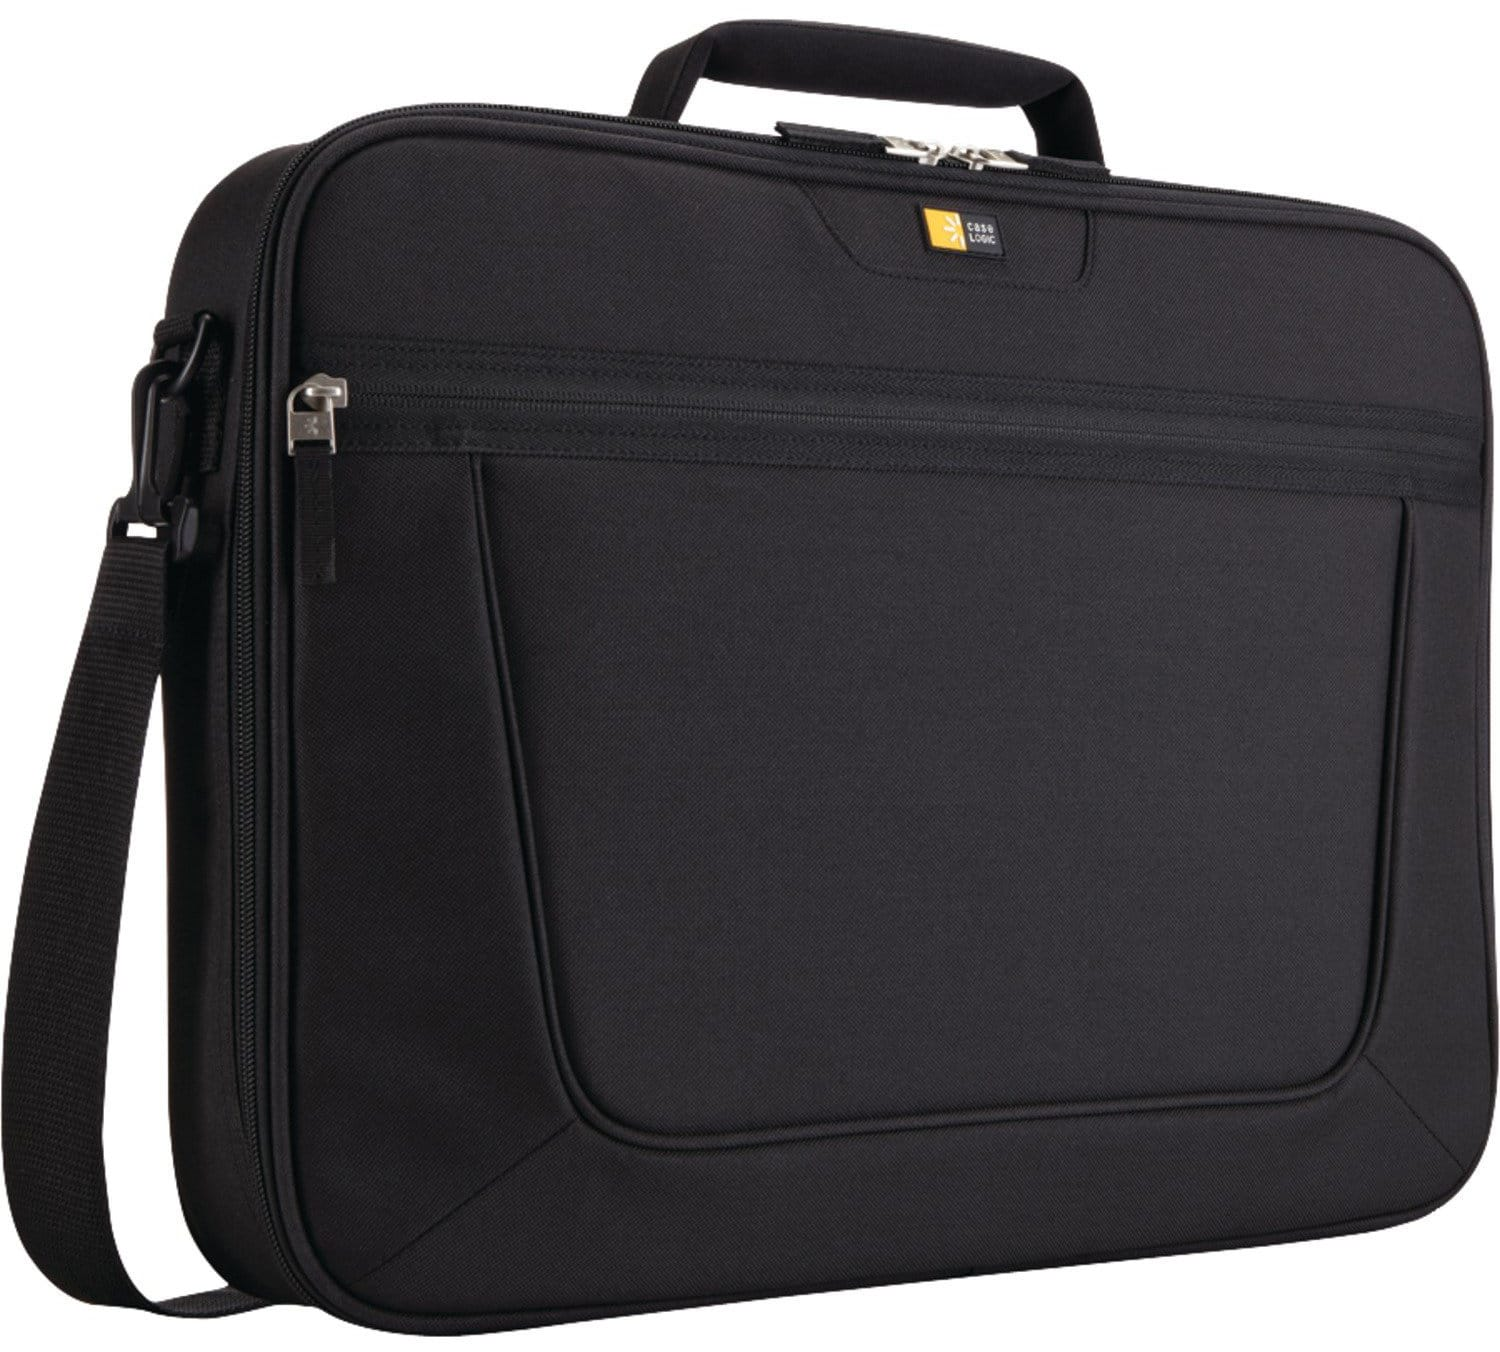 Top 10 Best Laptop Briefcases Reviewed